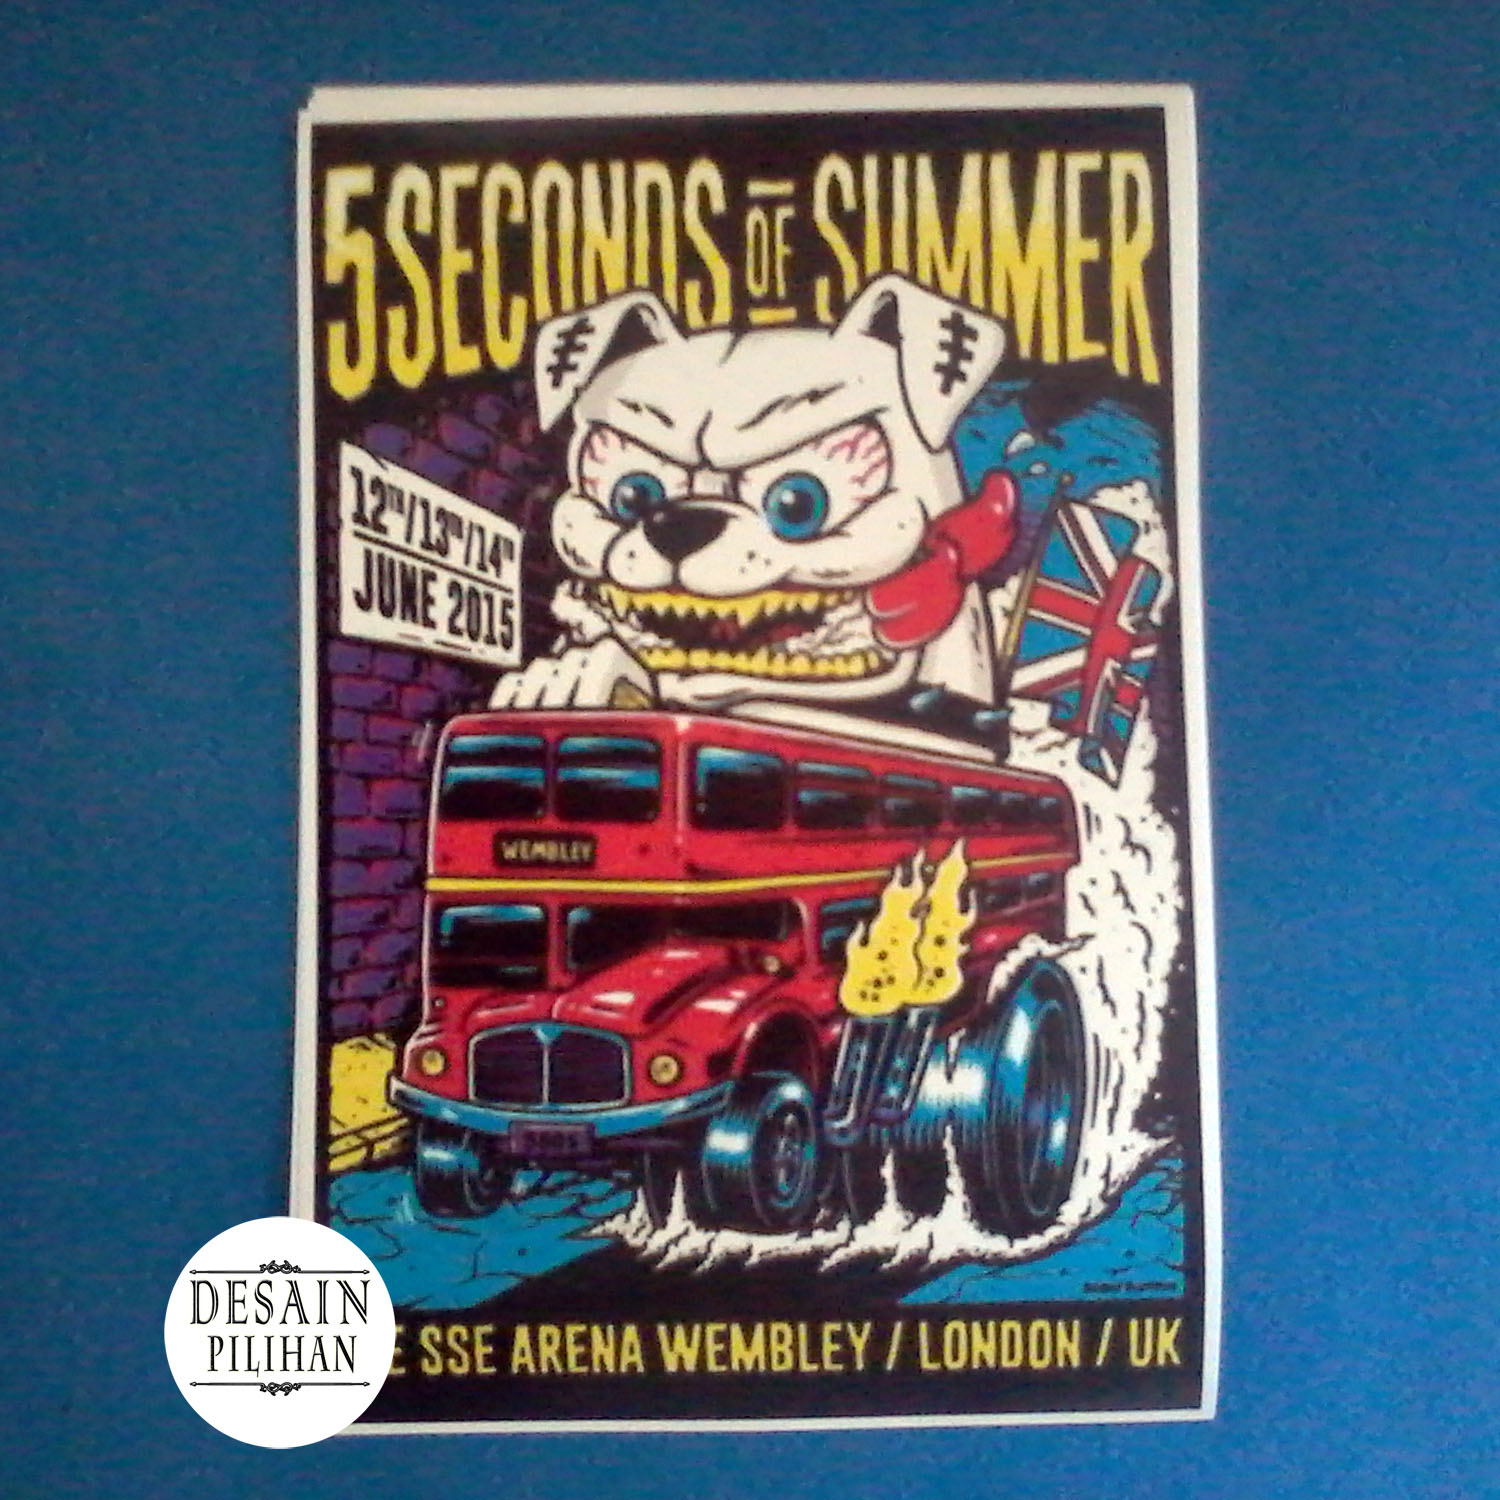 POSTER FIVE SECONDS OF SUMMER